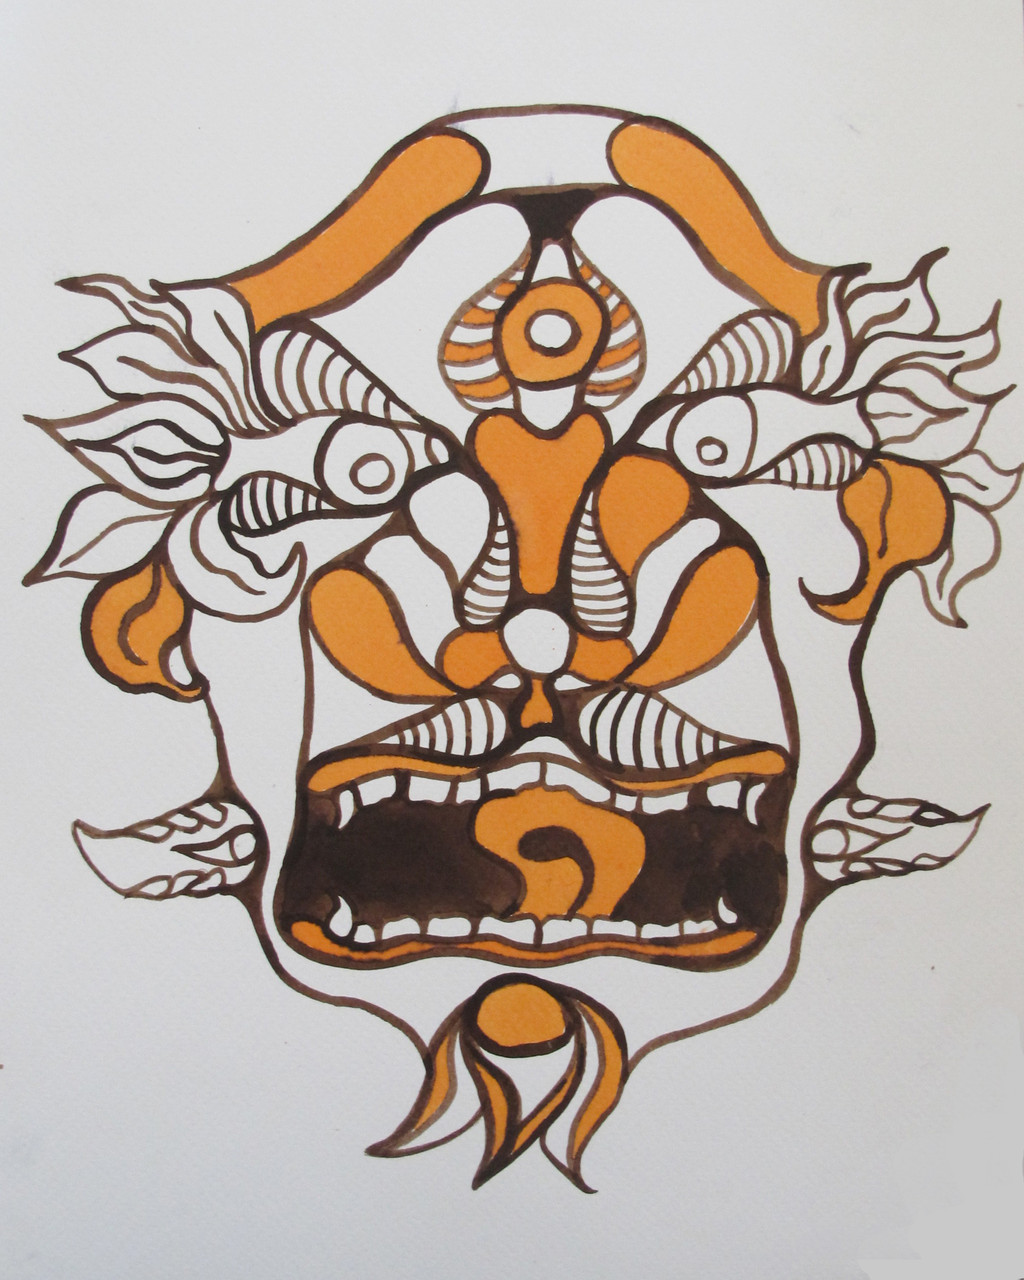 INDIEN SPIRITS 3, 320 X 240 mm, Ink on paper, 2014